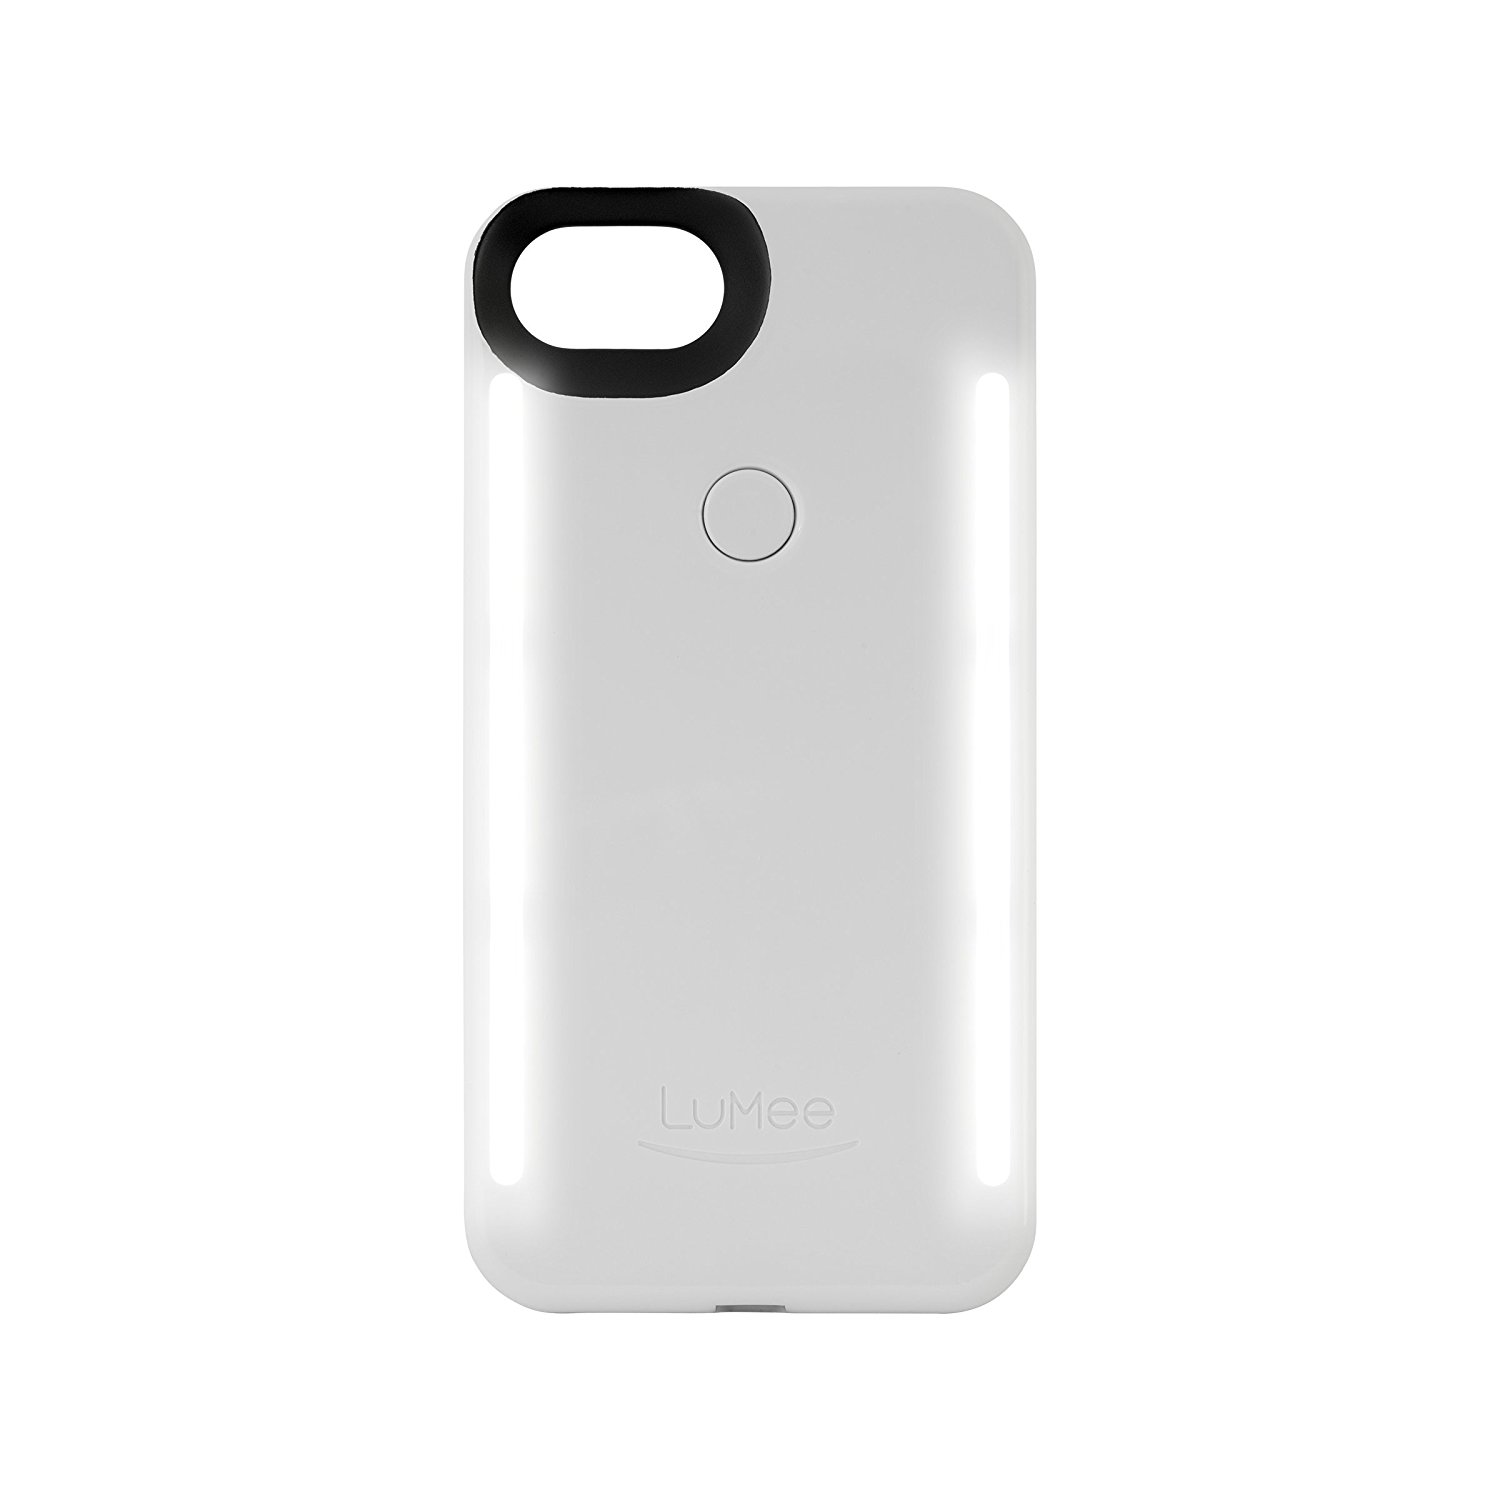 LUMEE Duo iPhone 7 - White Glossy